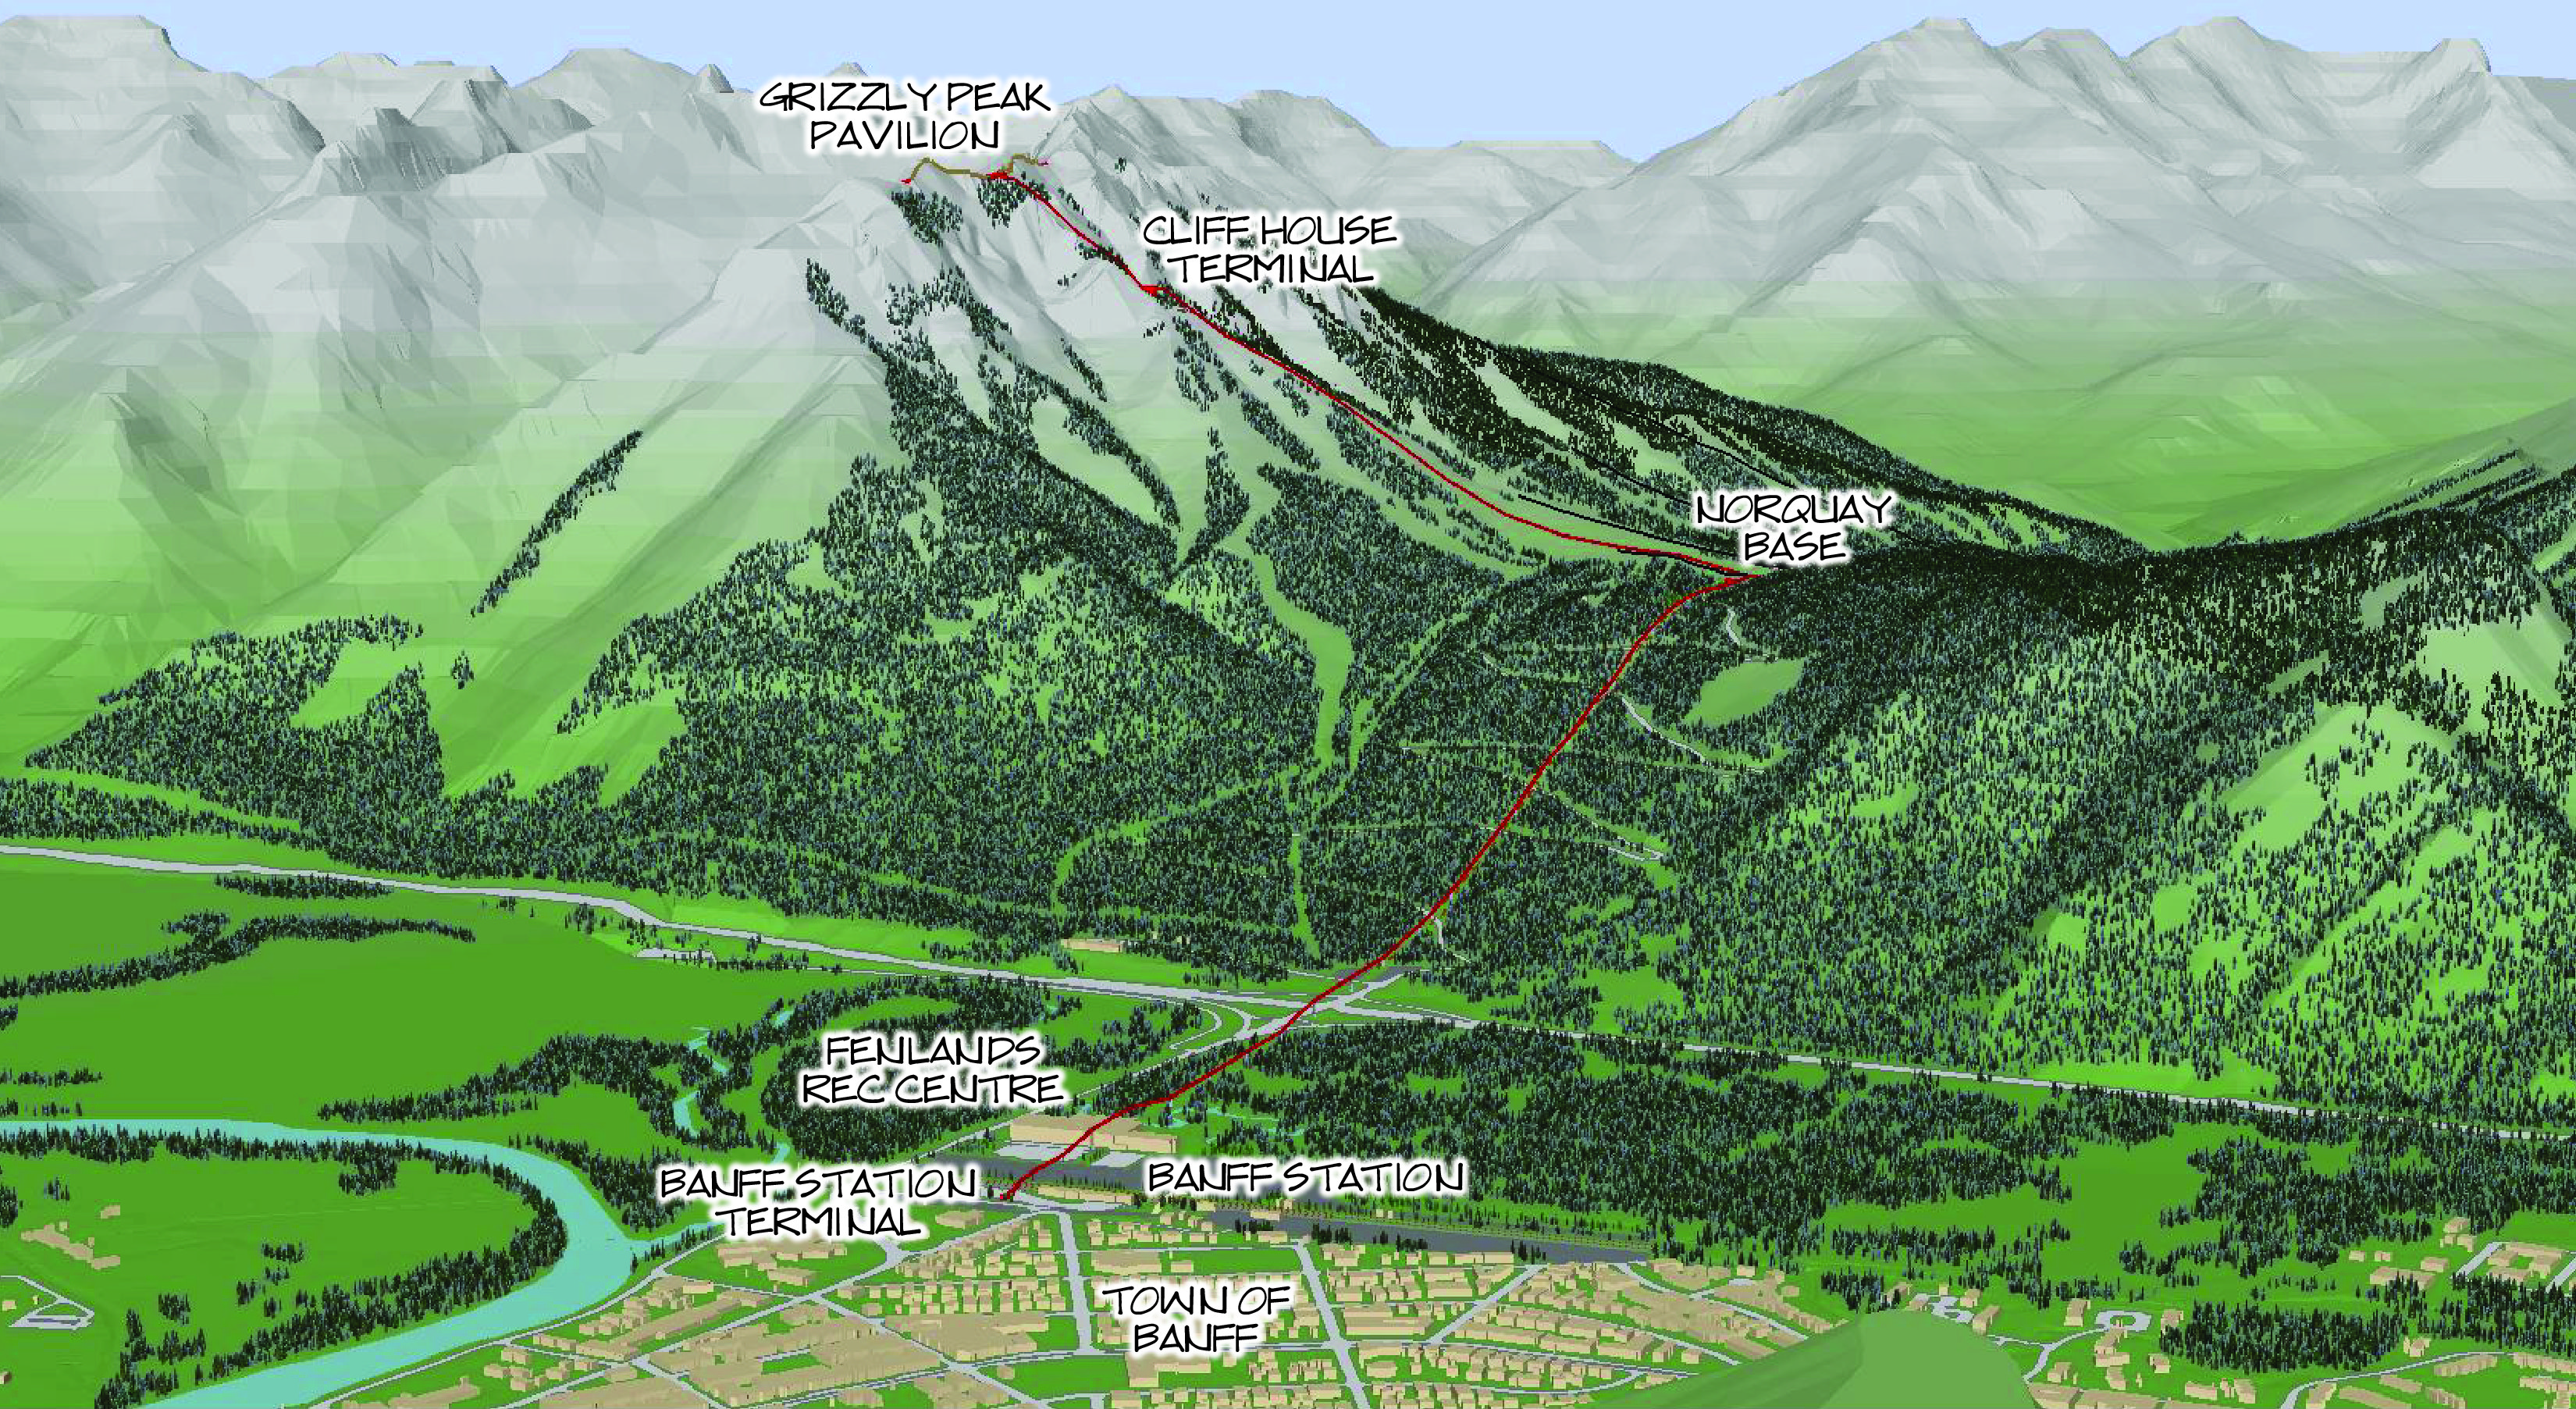 Town of Banff 3D Model, Mount Norquay, Banff Canada - BHA Ski Area and Gondola Planning and Design